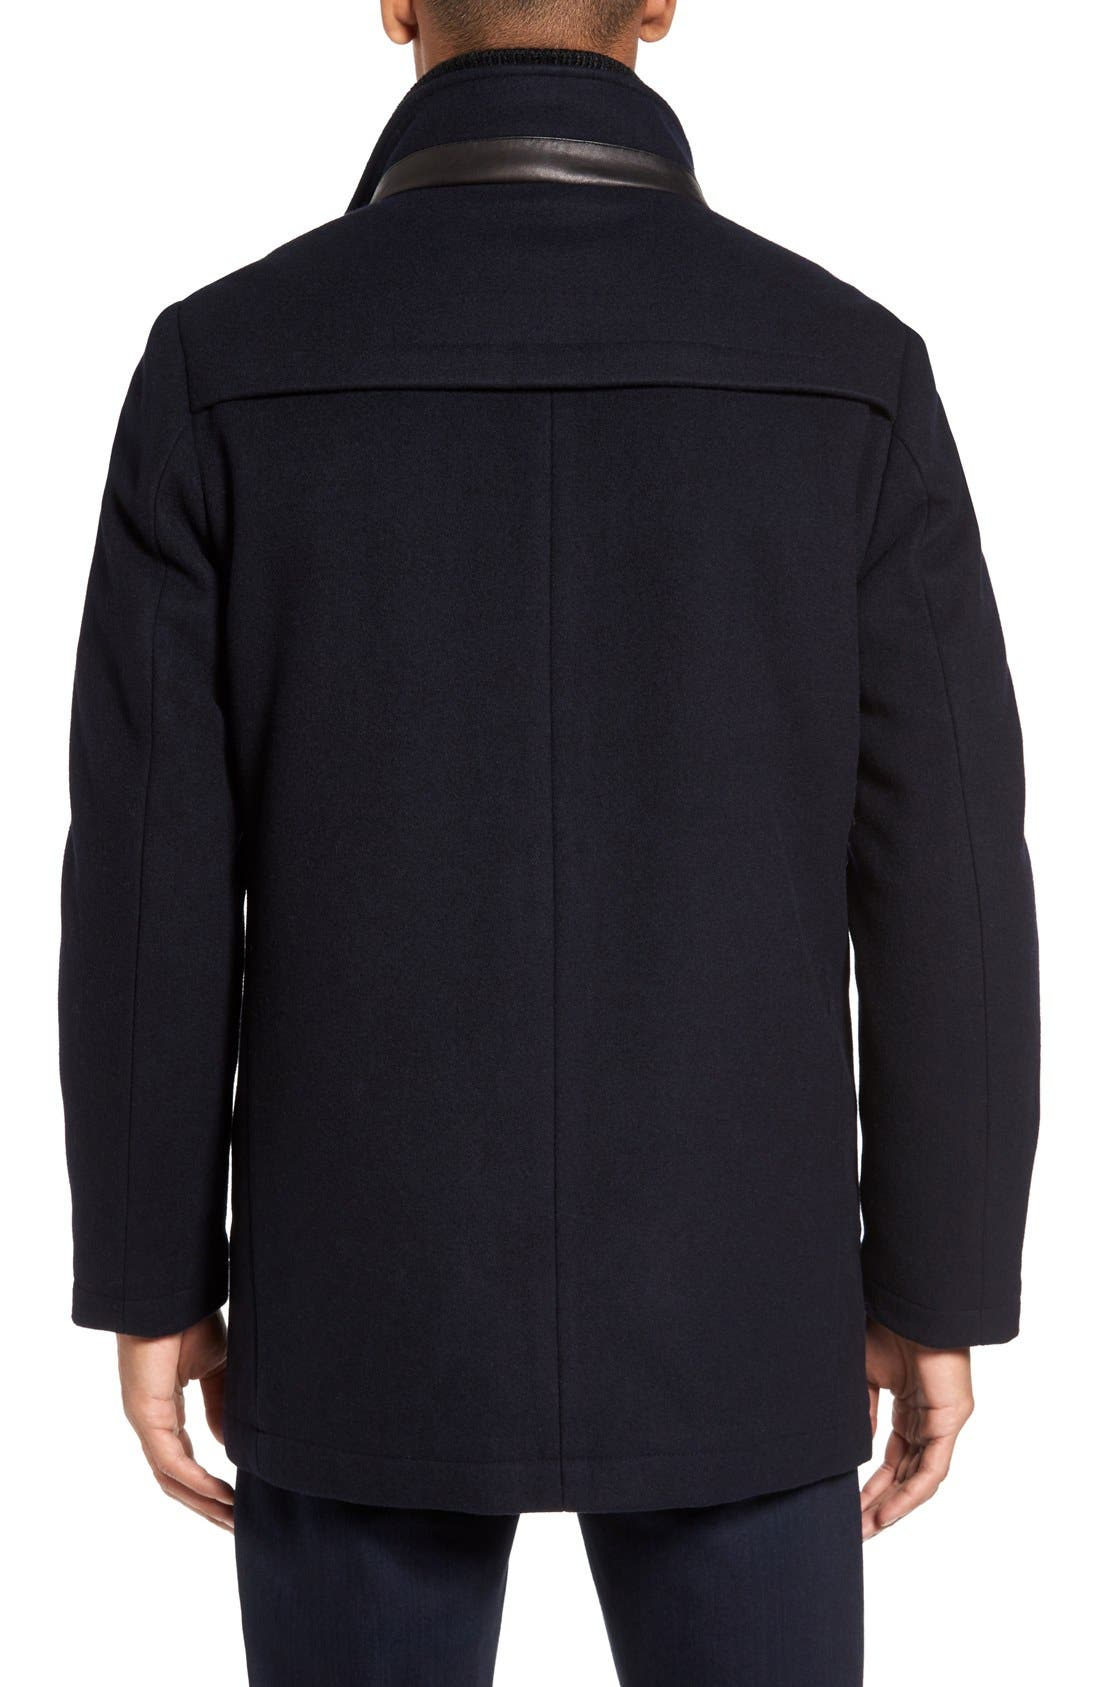 VINCE CAMUTO,                             Classic Wool Blend Car Coat with Inset Bib,                             Alternate thumbnail 2, color,                             NAVY